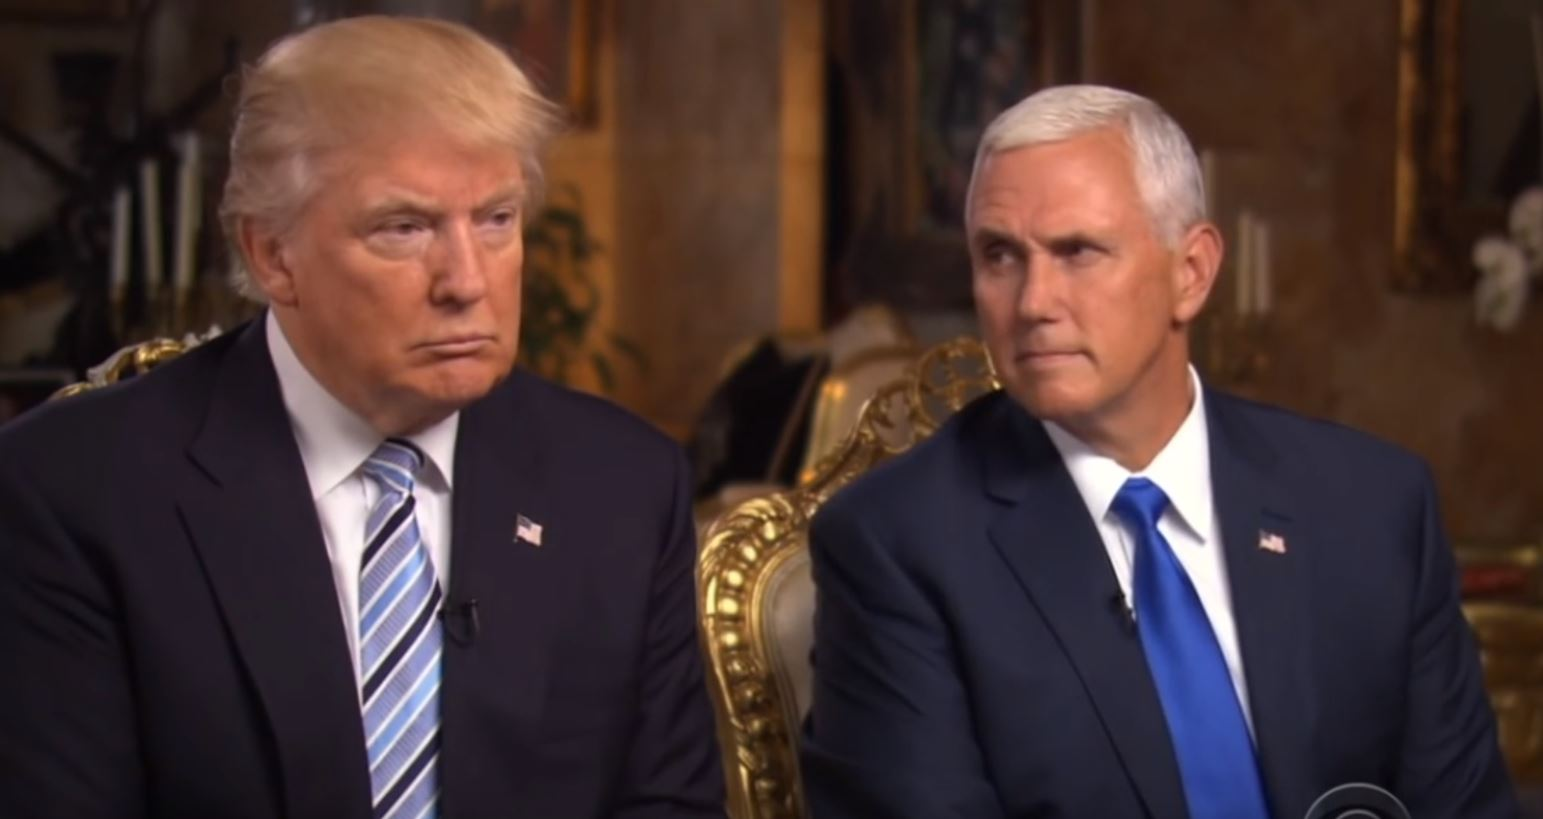 Mike Pence Says He 'Couldn't Be More Proud' Of Trump's New Anti-LGBT Adoption Rule